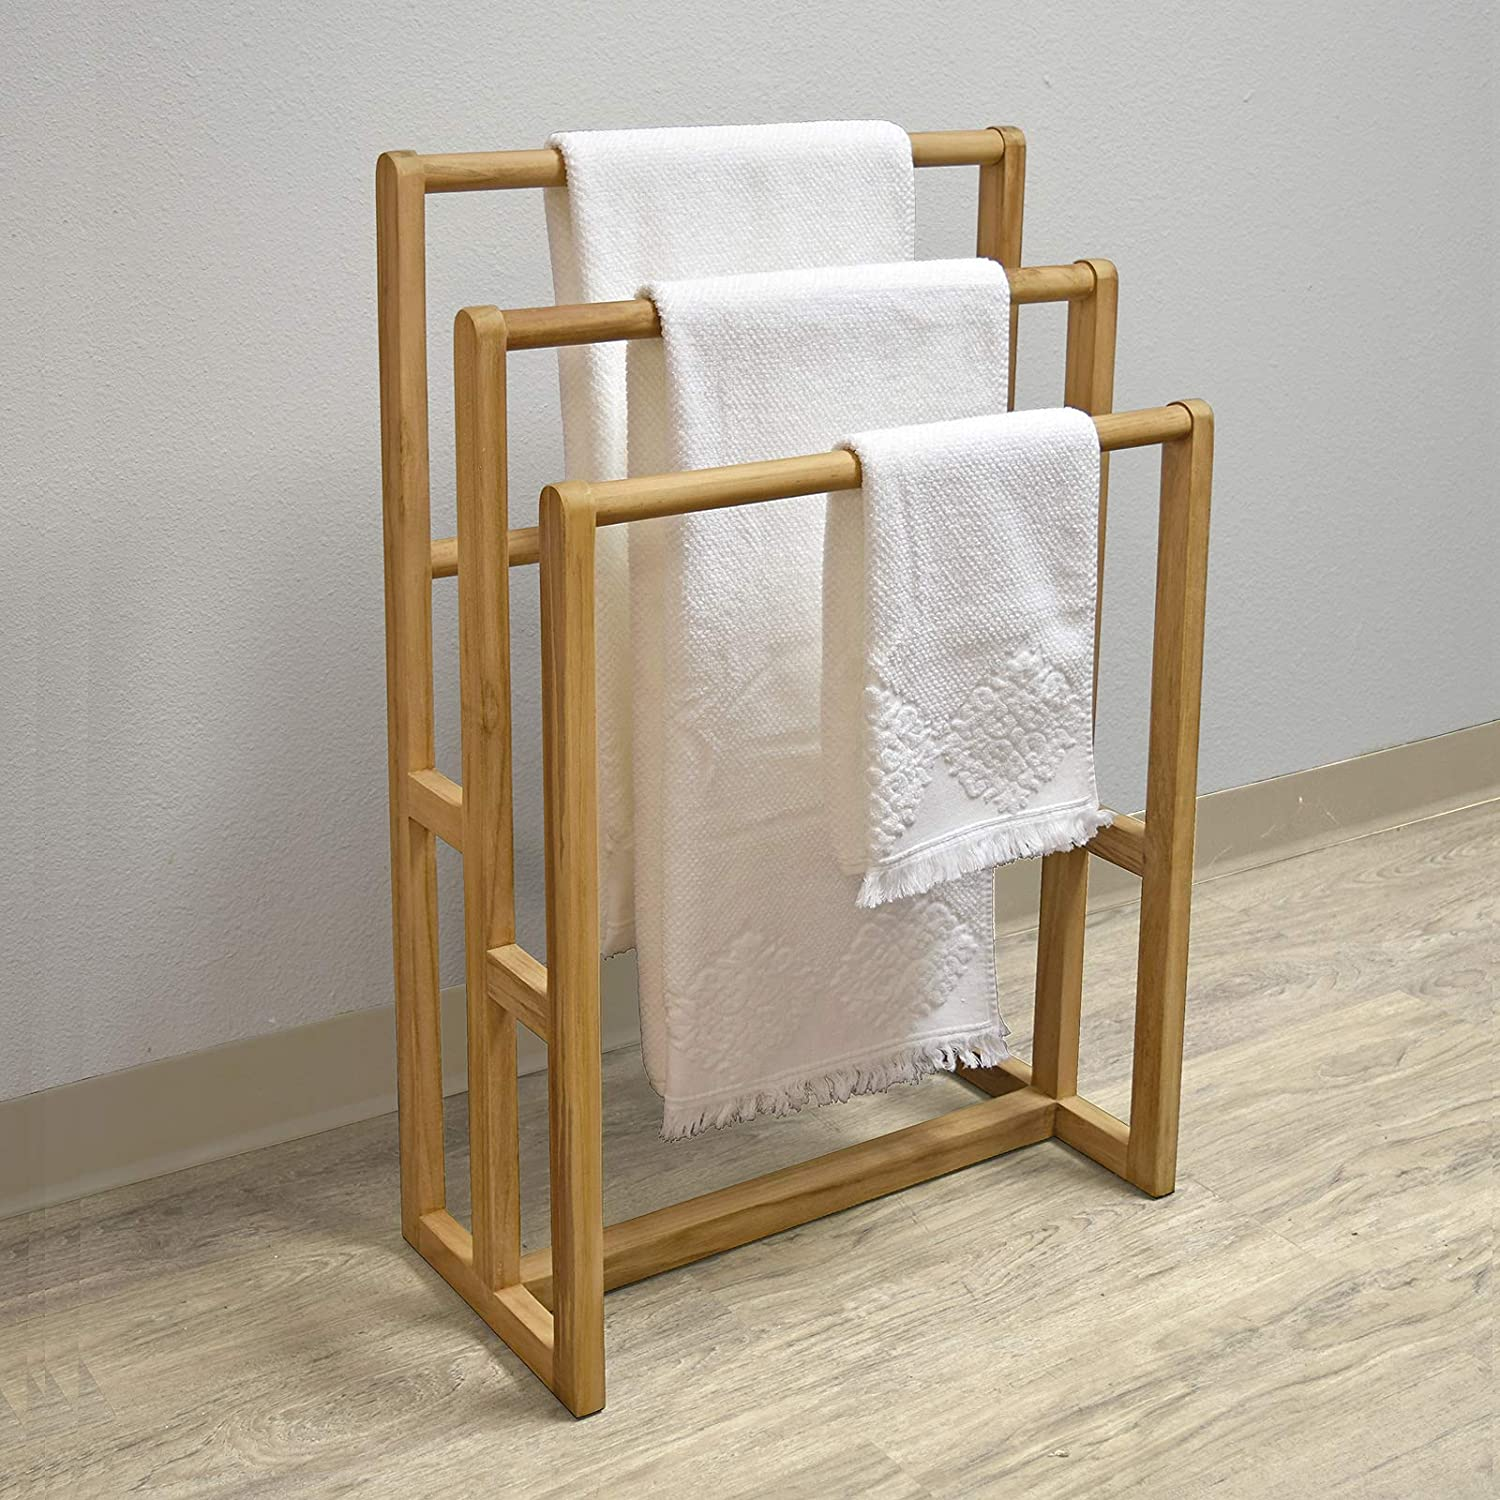 Asta Spa Teak Freestanding Towel Rack, 3-Bar, Fully Assembled